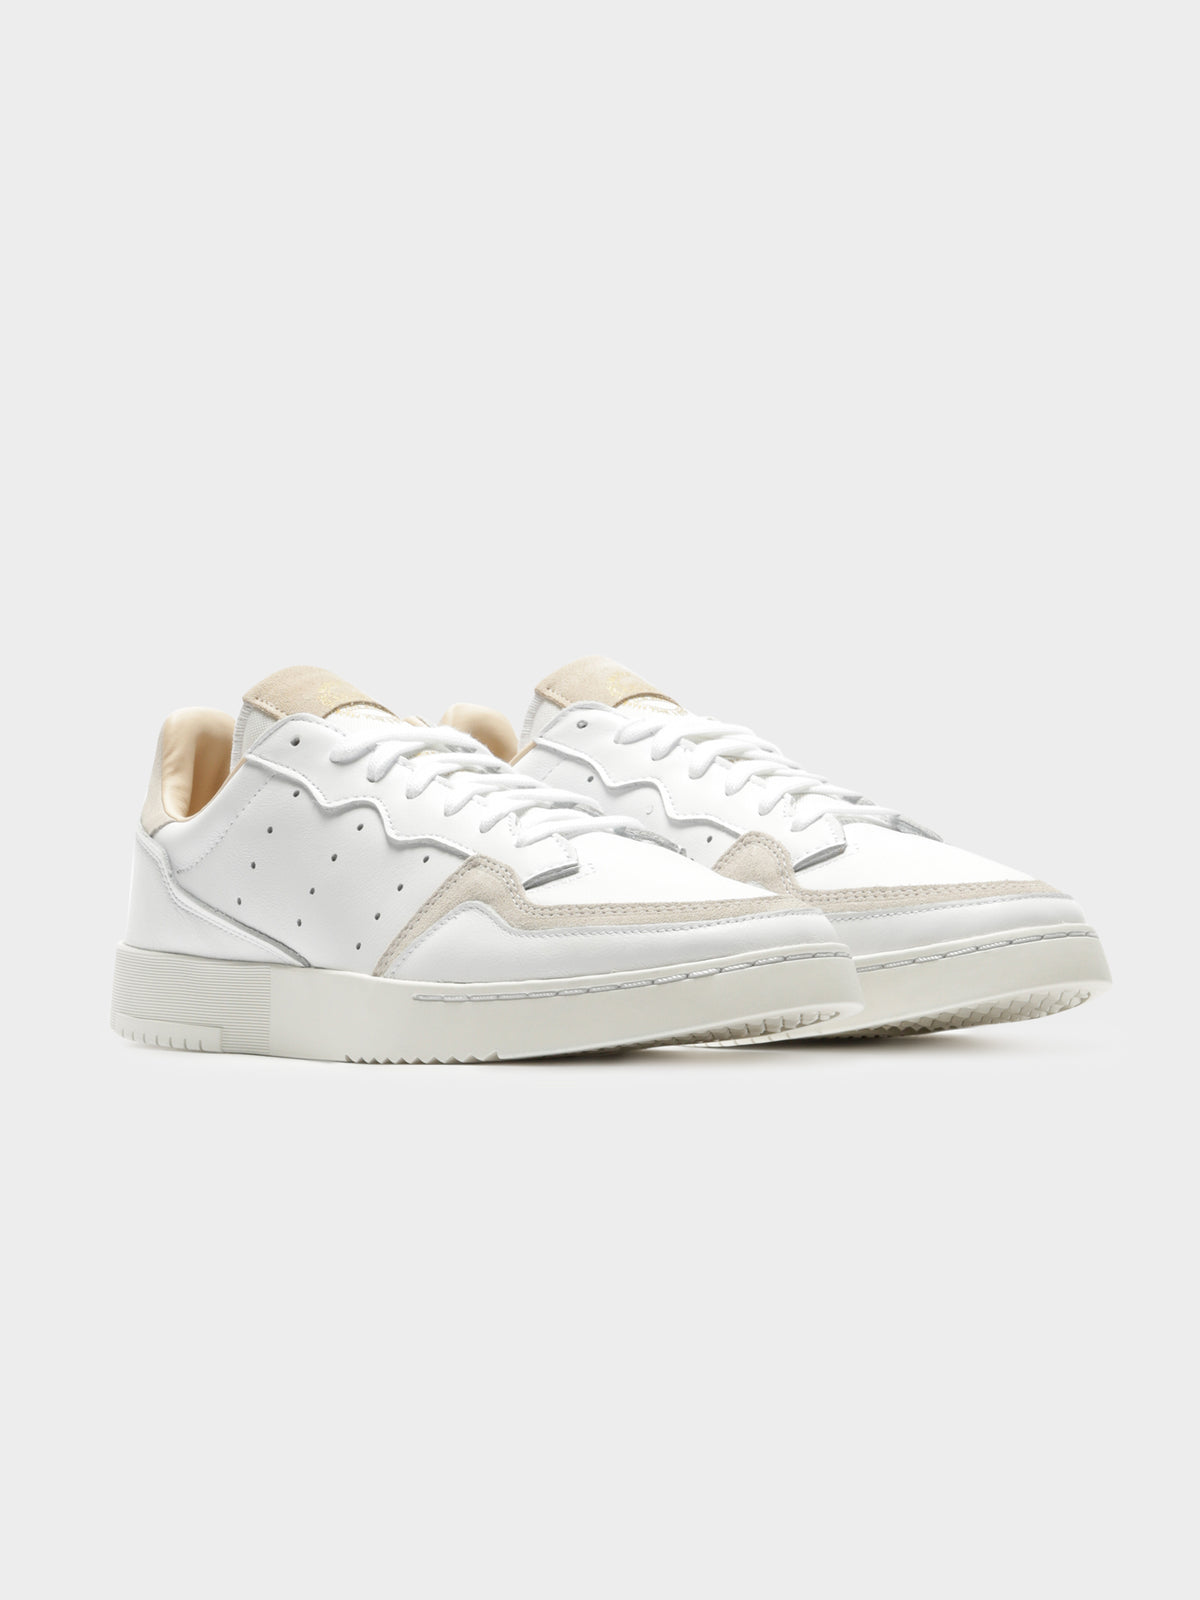 Unisex Supercourt Sneakers in Cloud White & Crystal White